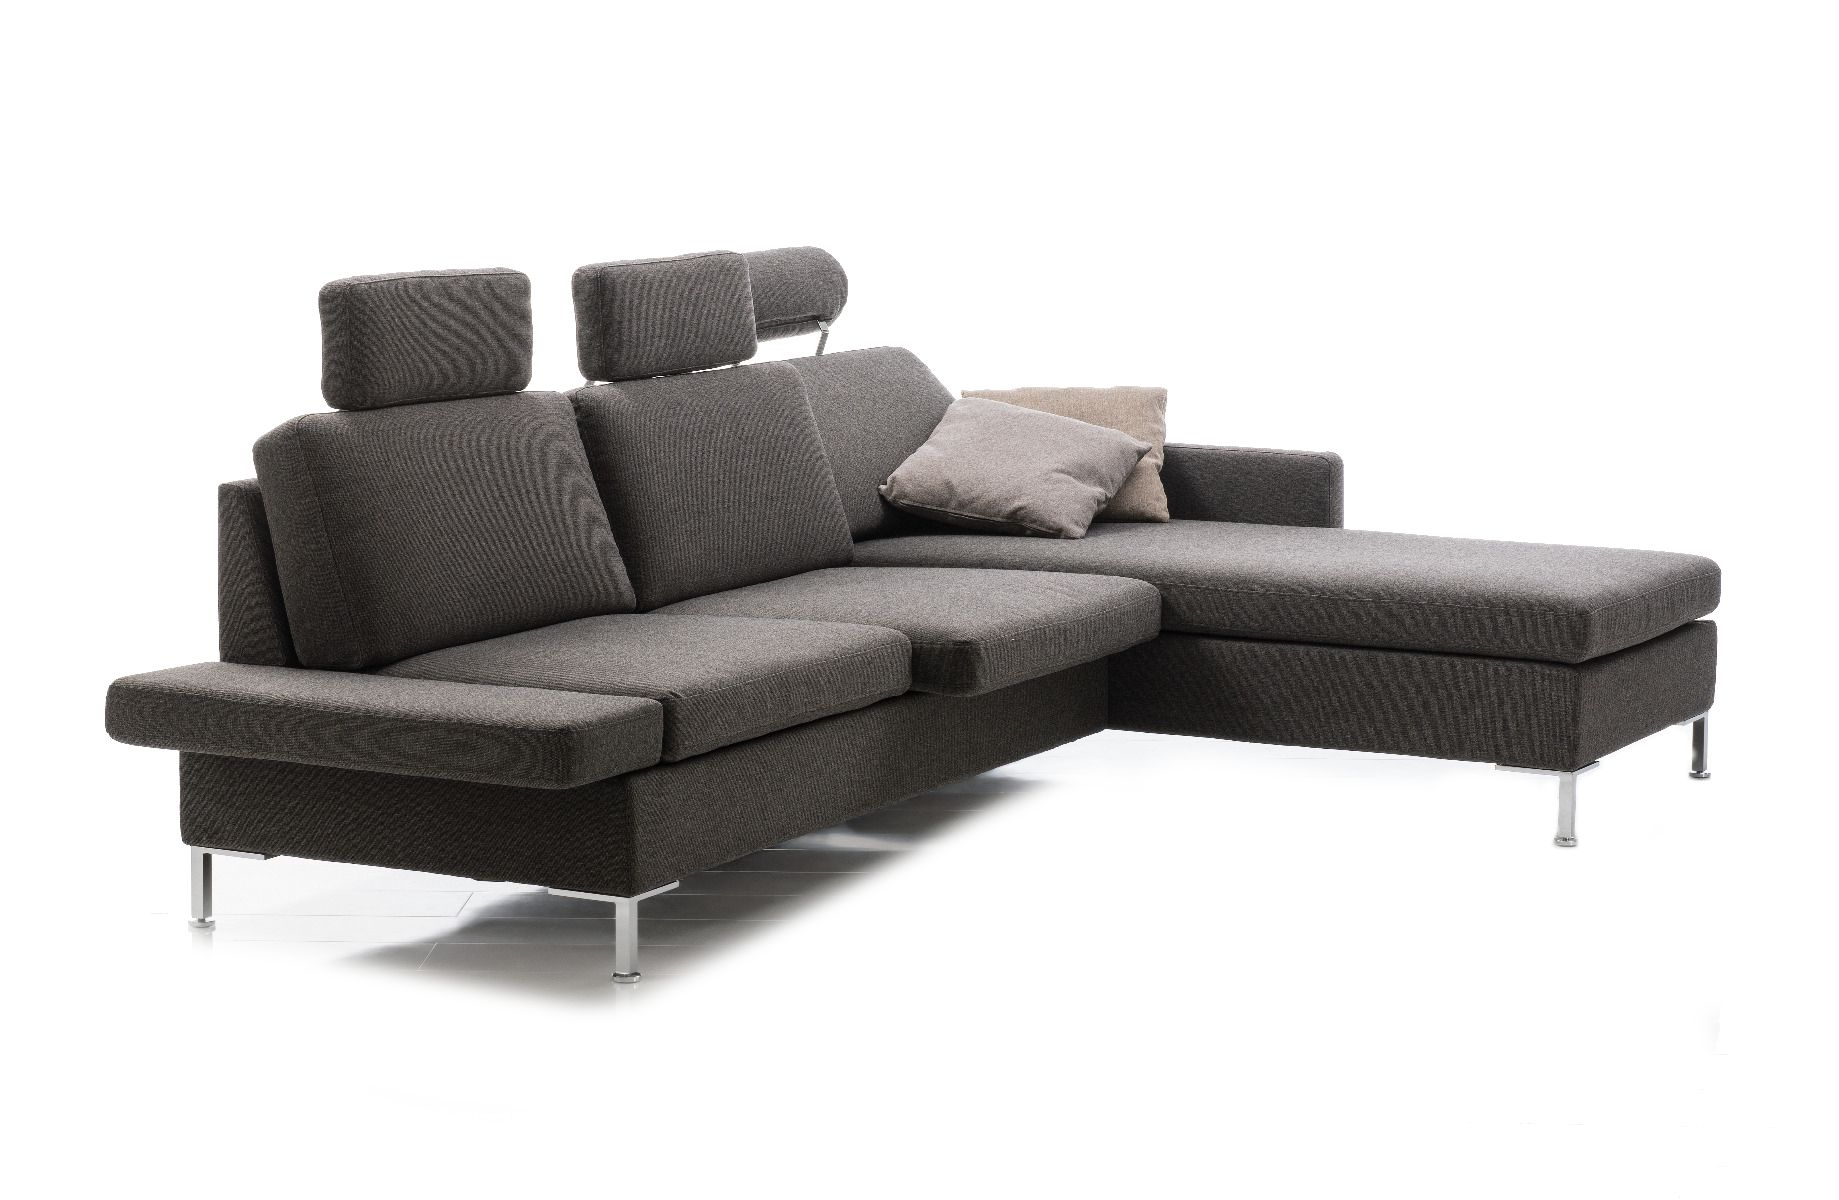 Ecksofa Minimalistisch Alba All In One Ecksofa